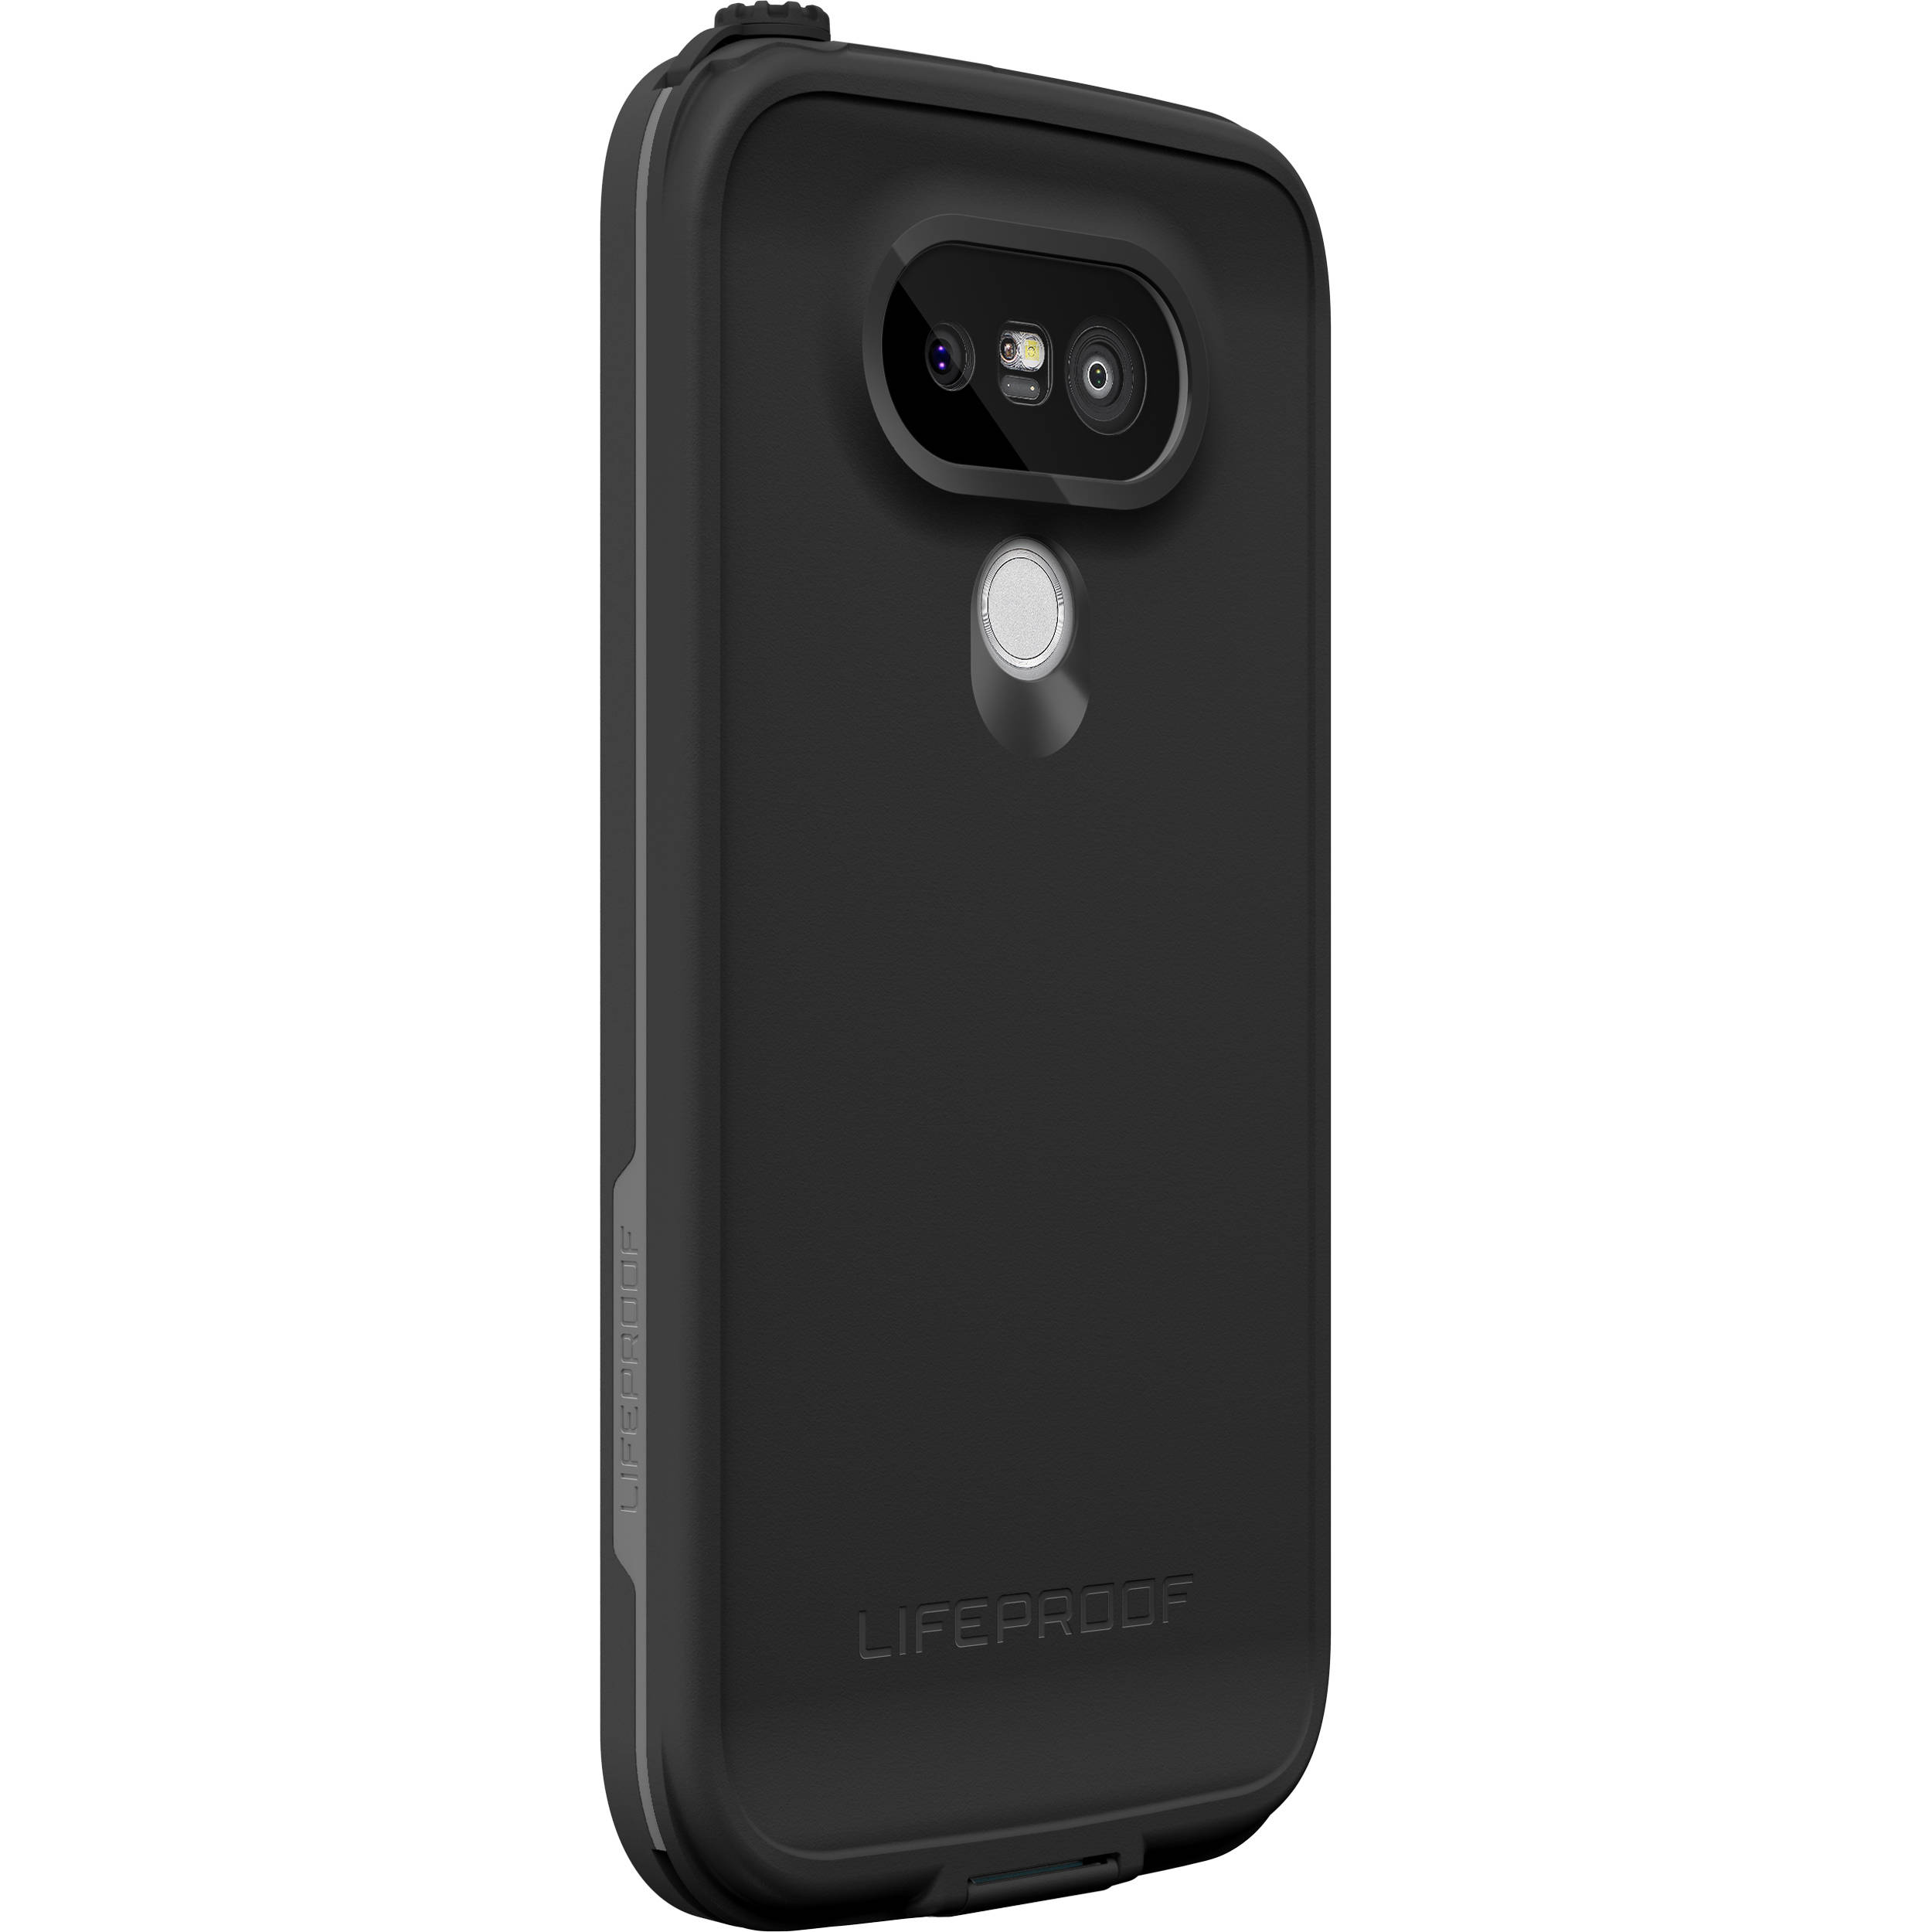 Case as well cover hybrid belt clip stand phone case for lg k10